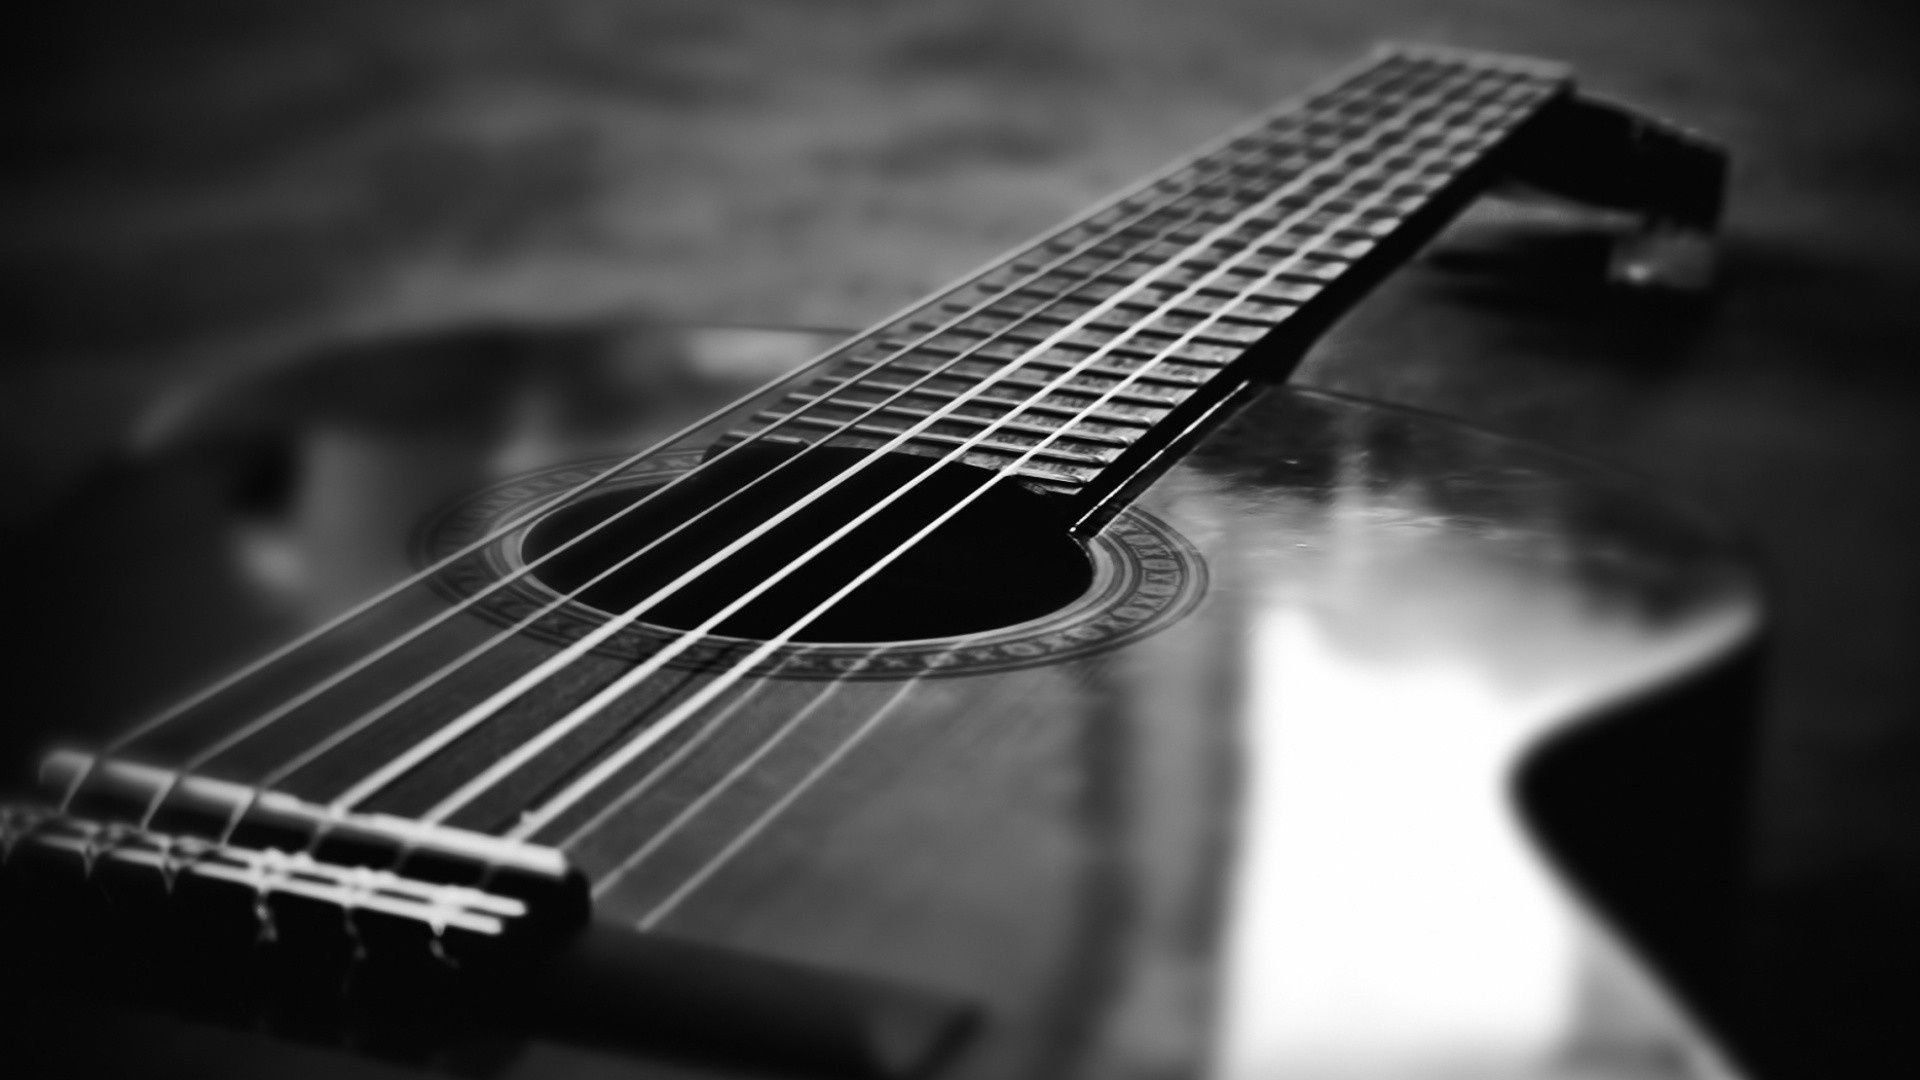 Hd wallpaper black and white - Black And White Guitar Hd Wallpapers